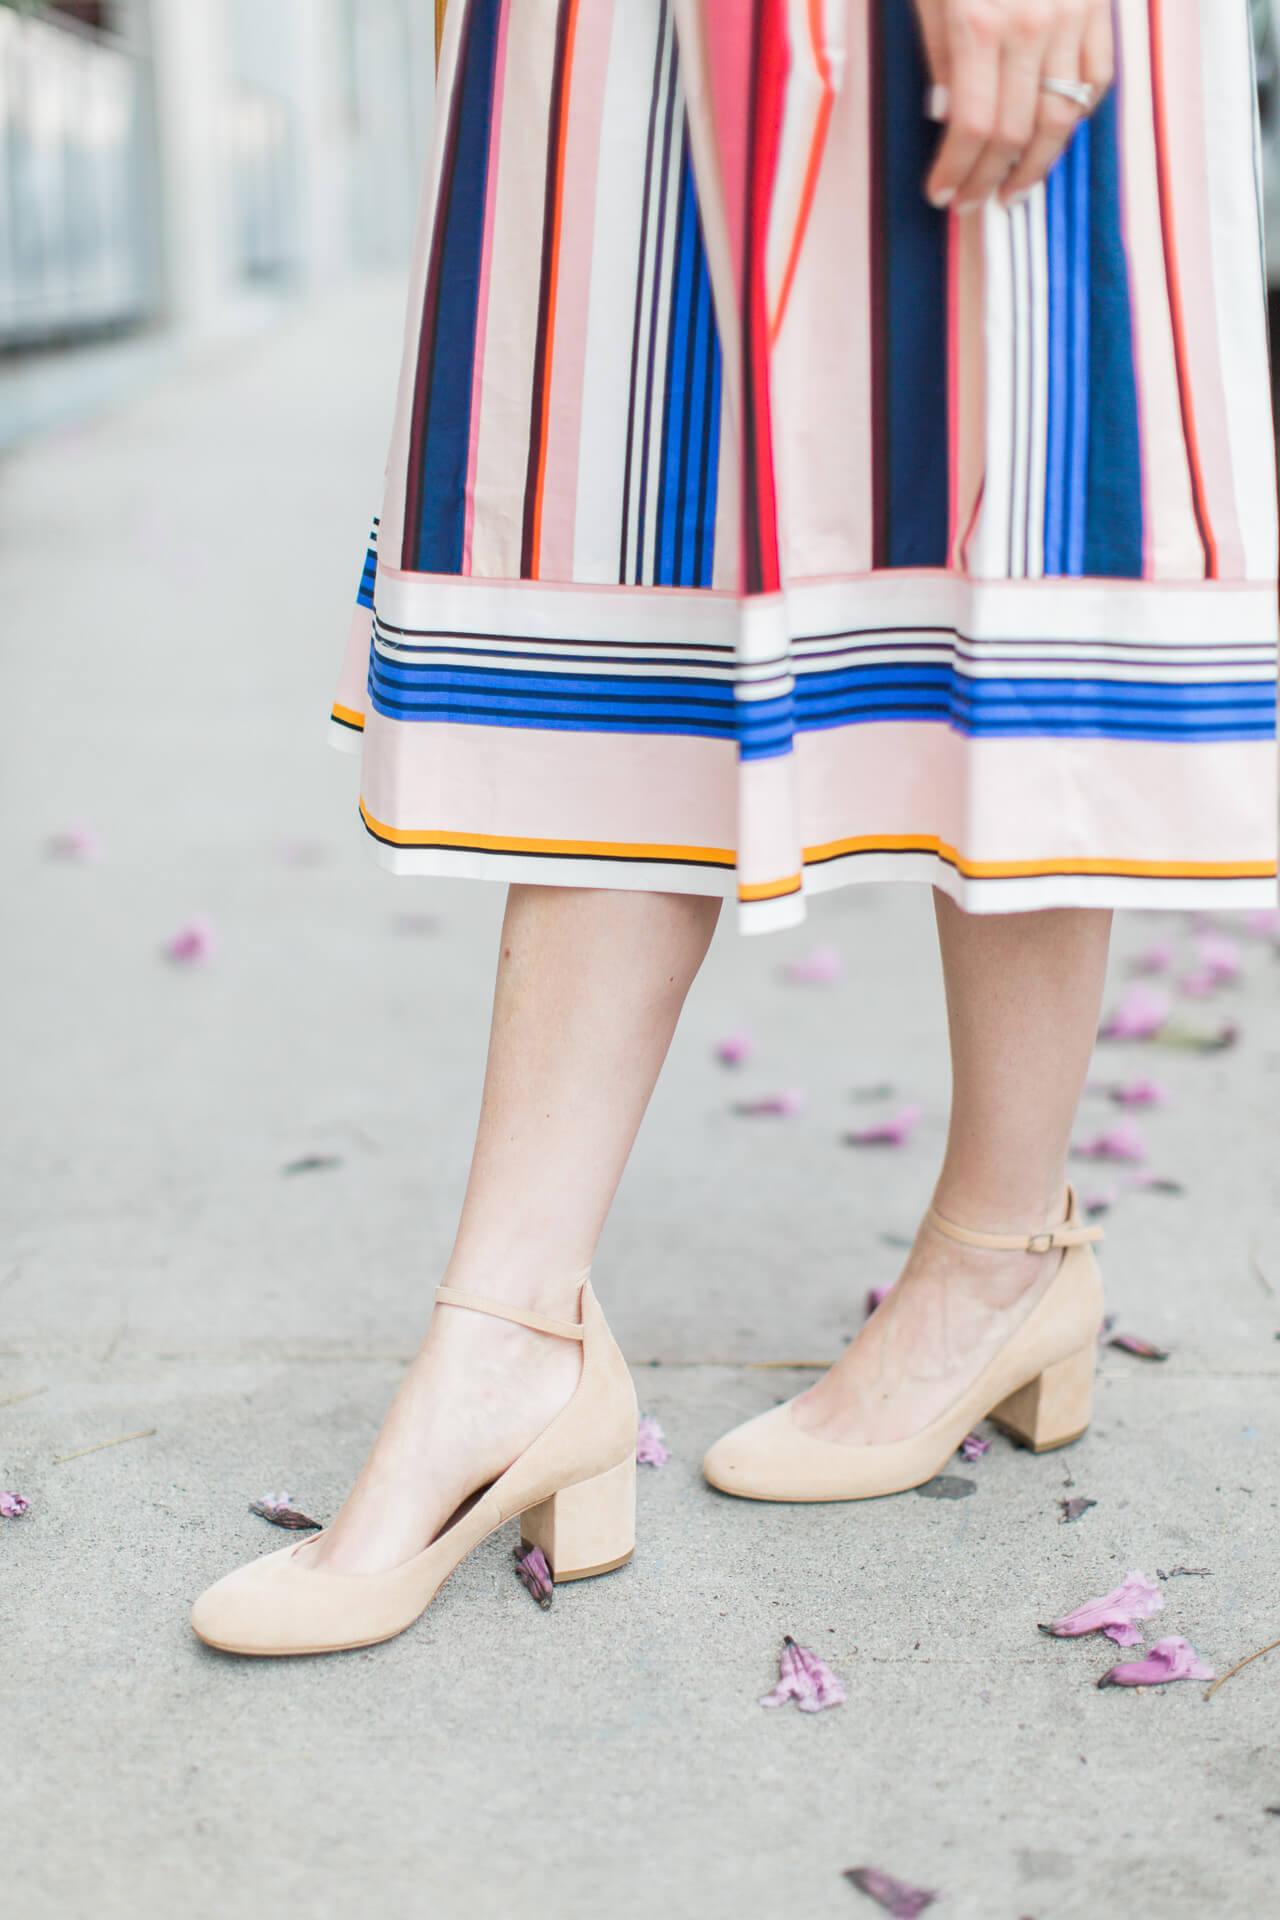 pair a neutral heel with this colorful dress